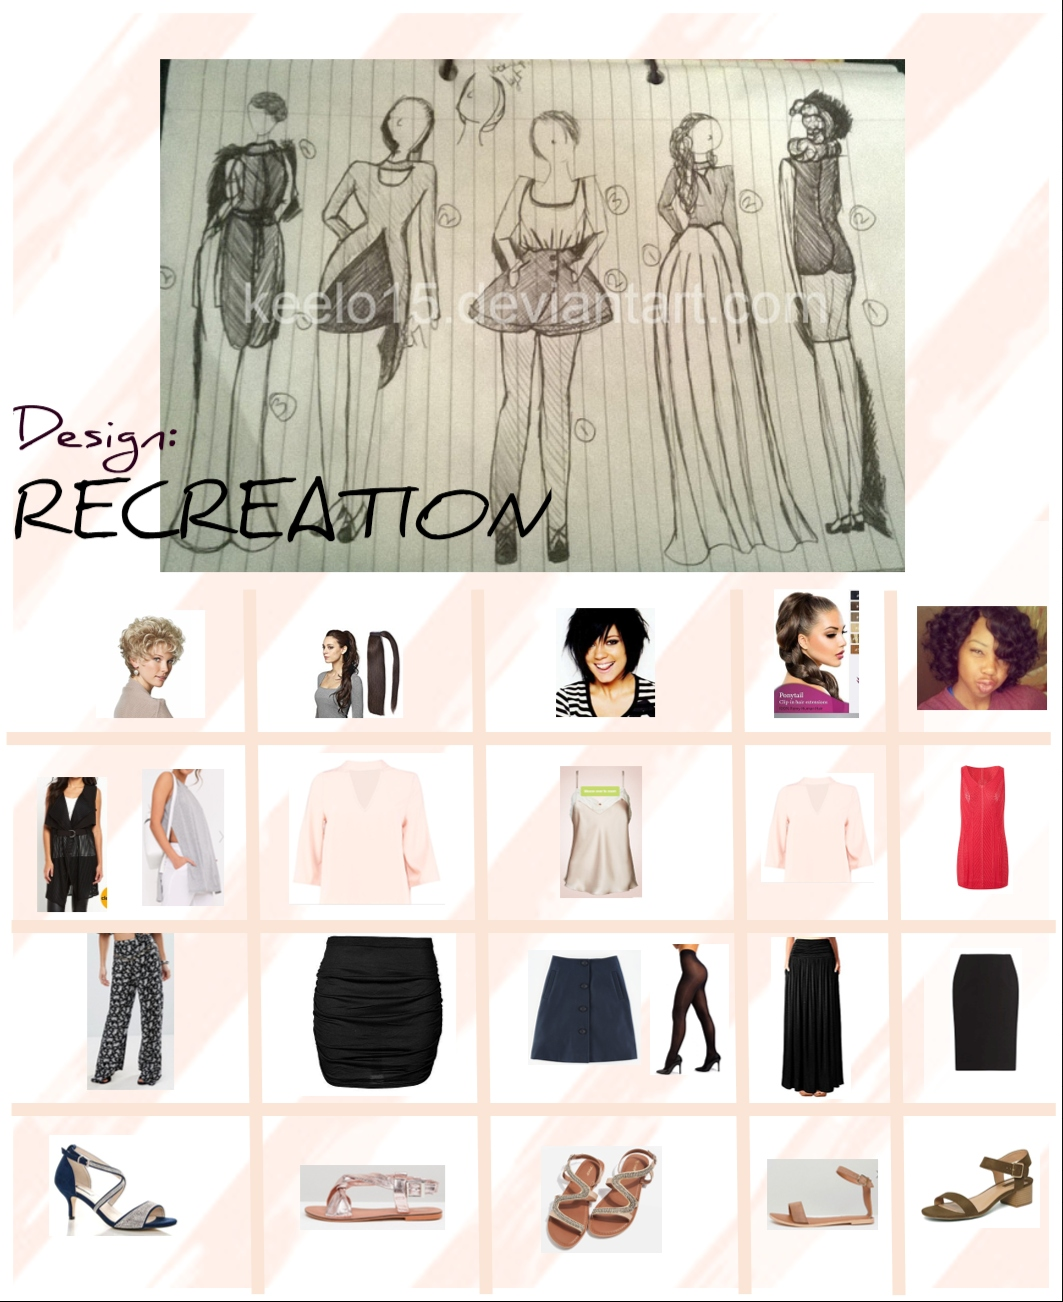 Design_ RECREATION